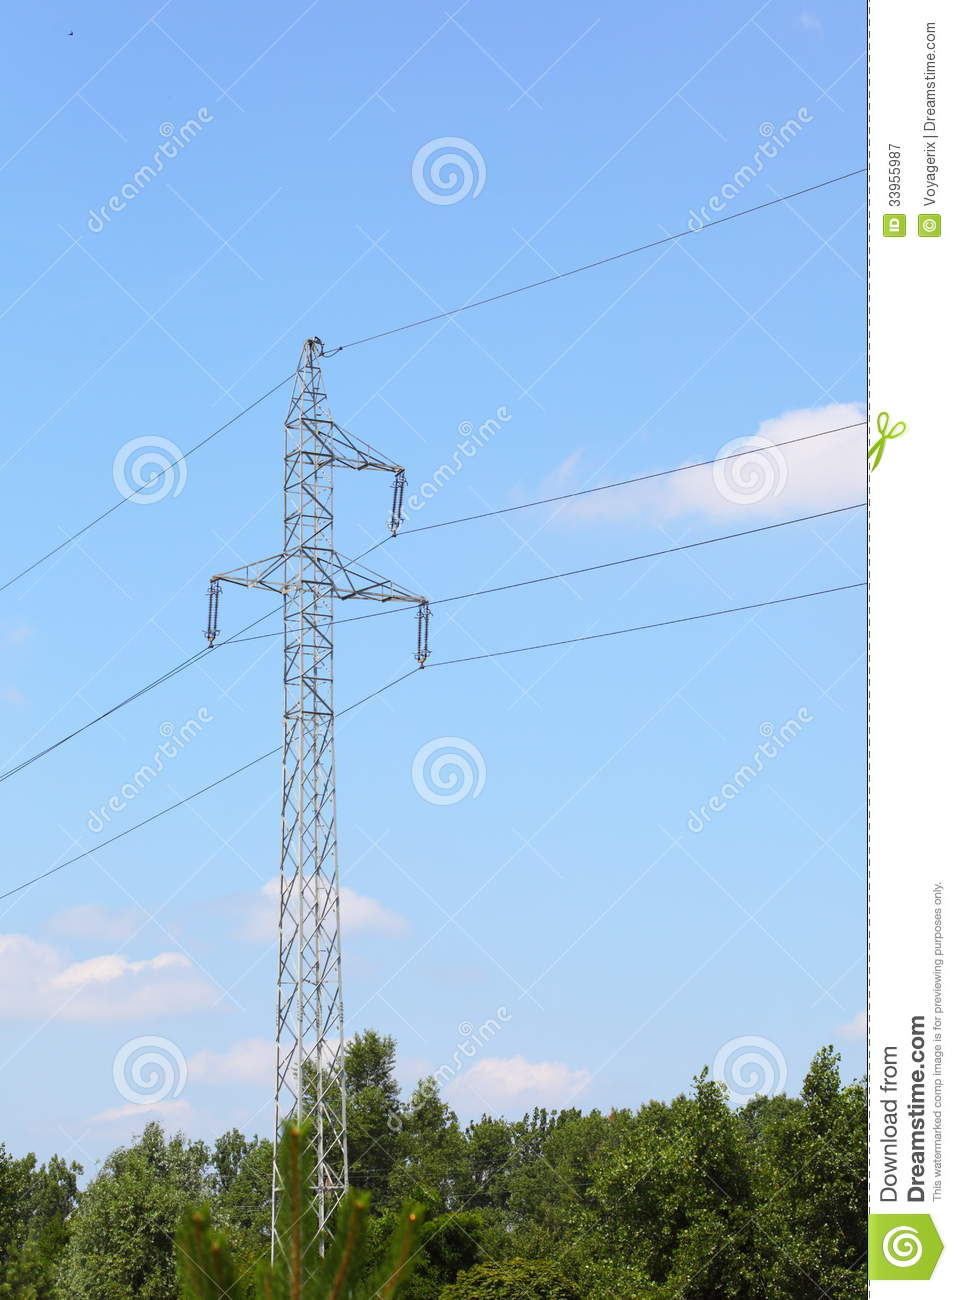 High-voltage Wire Tower Electricity Pylons Stock Image - Image of ...